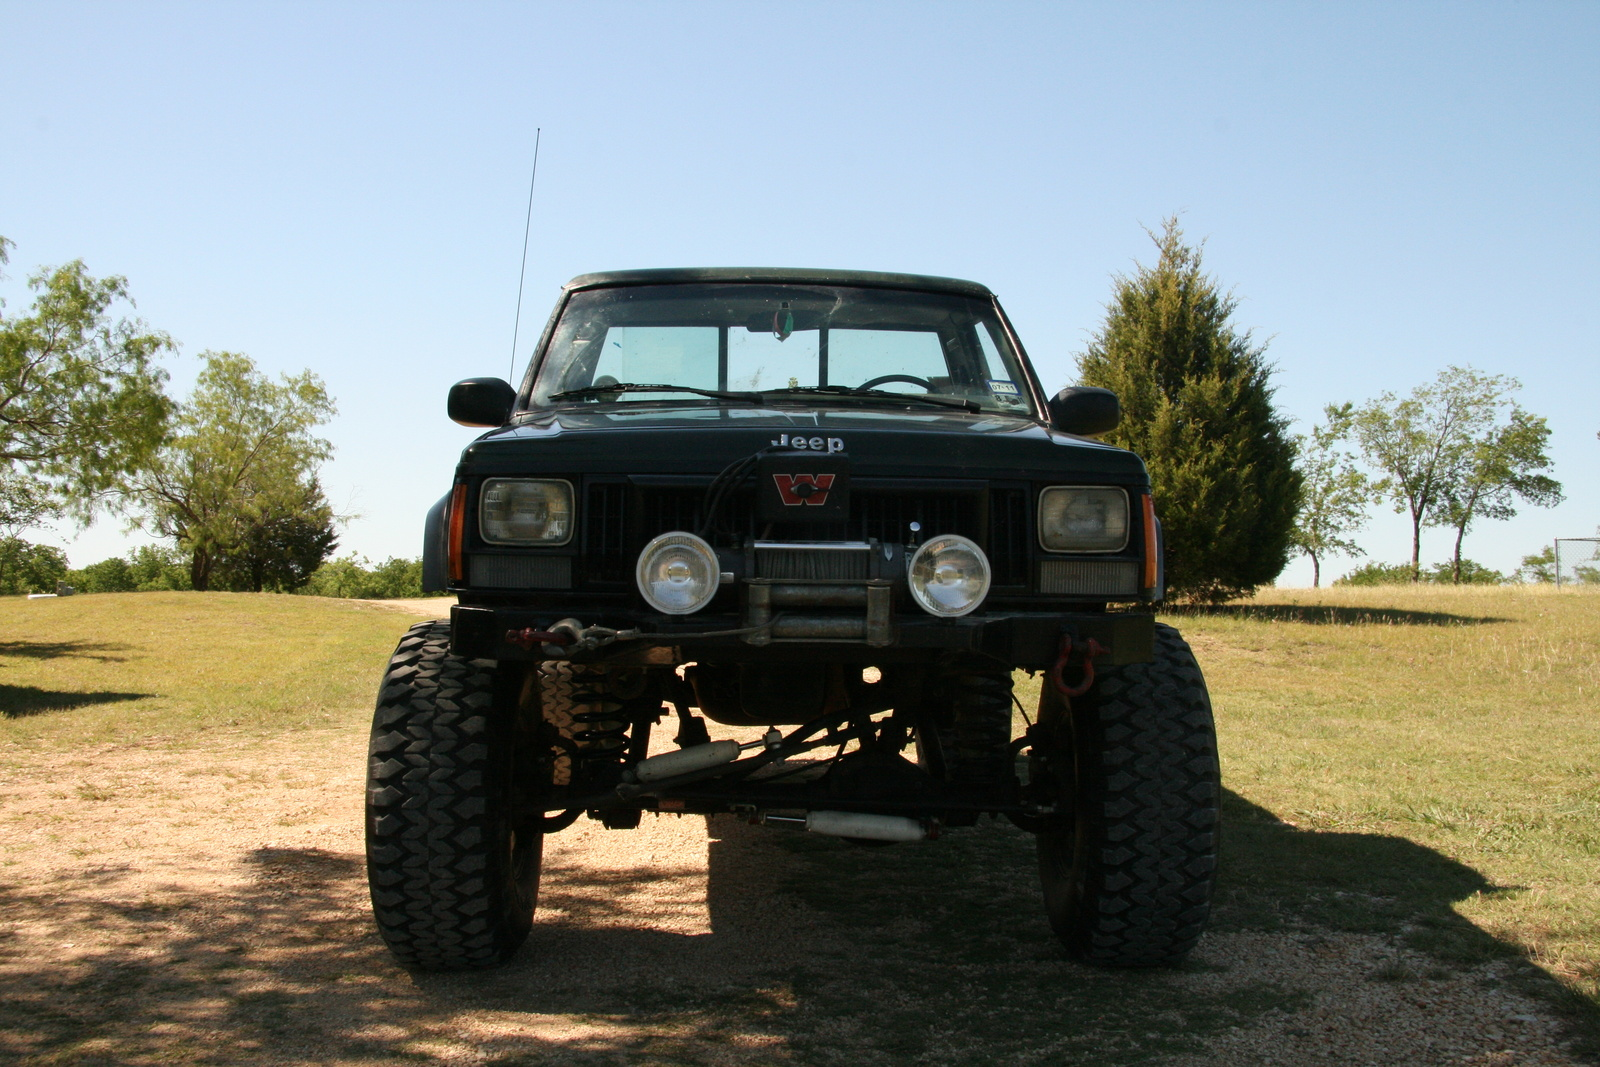 1988 Jeep Comanche picture